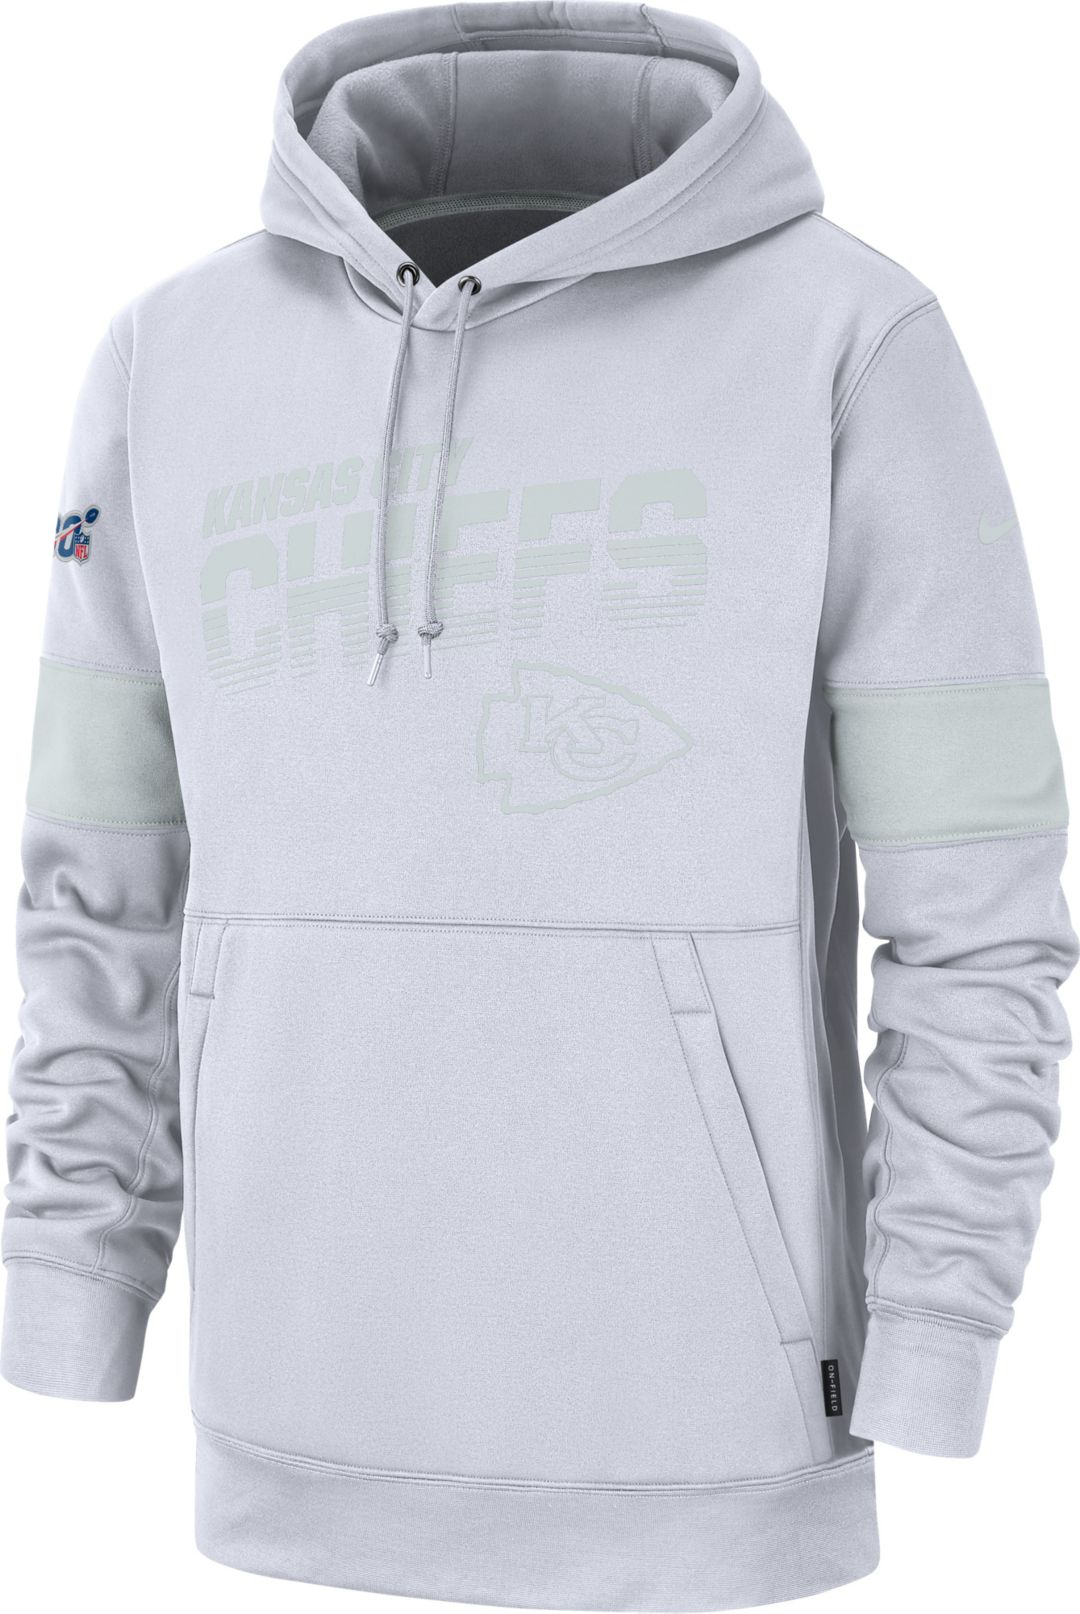 meet 65fc4 2c0d4 Nike Men's Kansas City Chiefs 100th Sideline Therma-FIT Pullover White  Hoodie